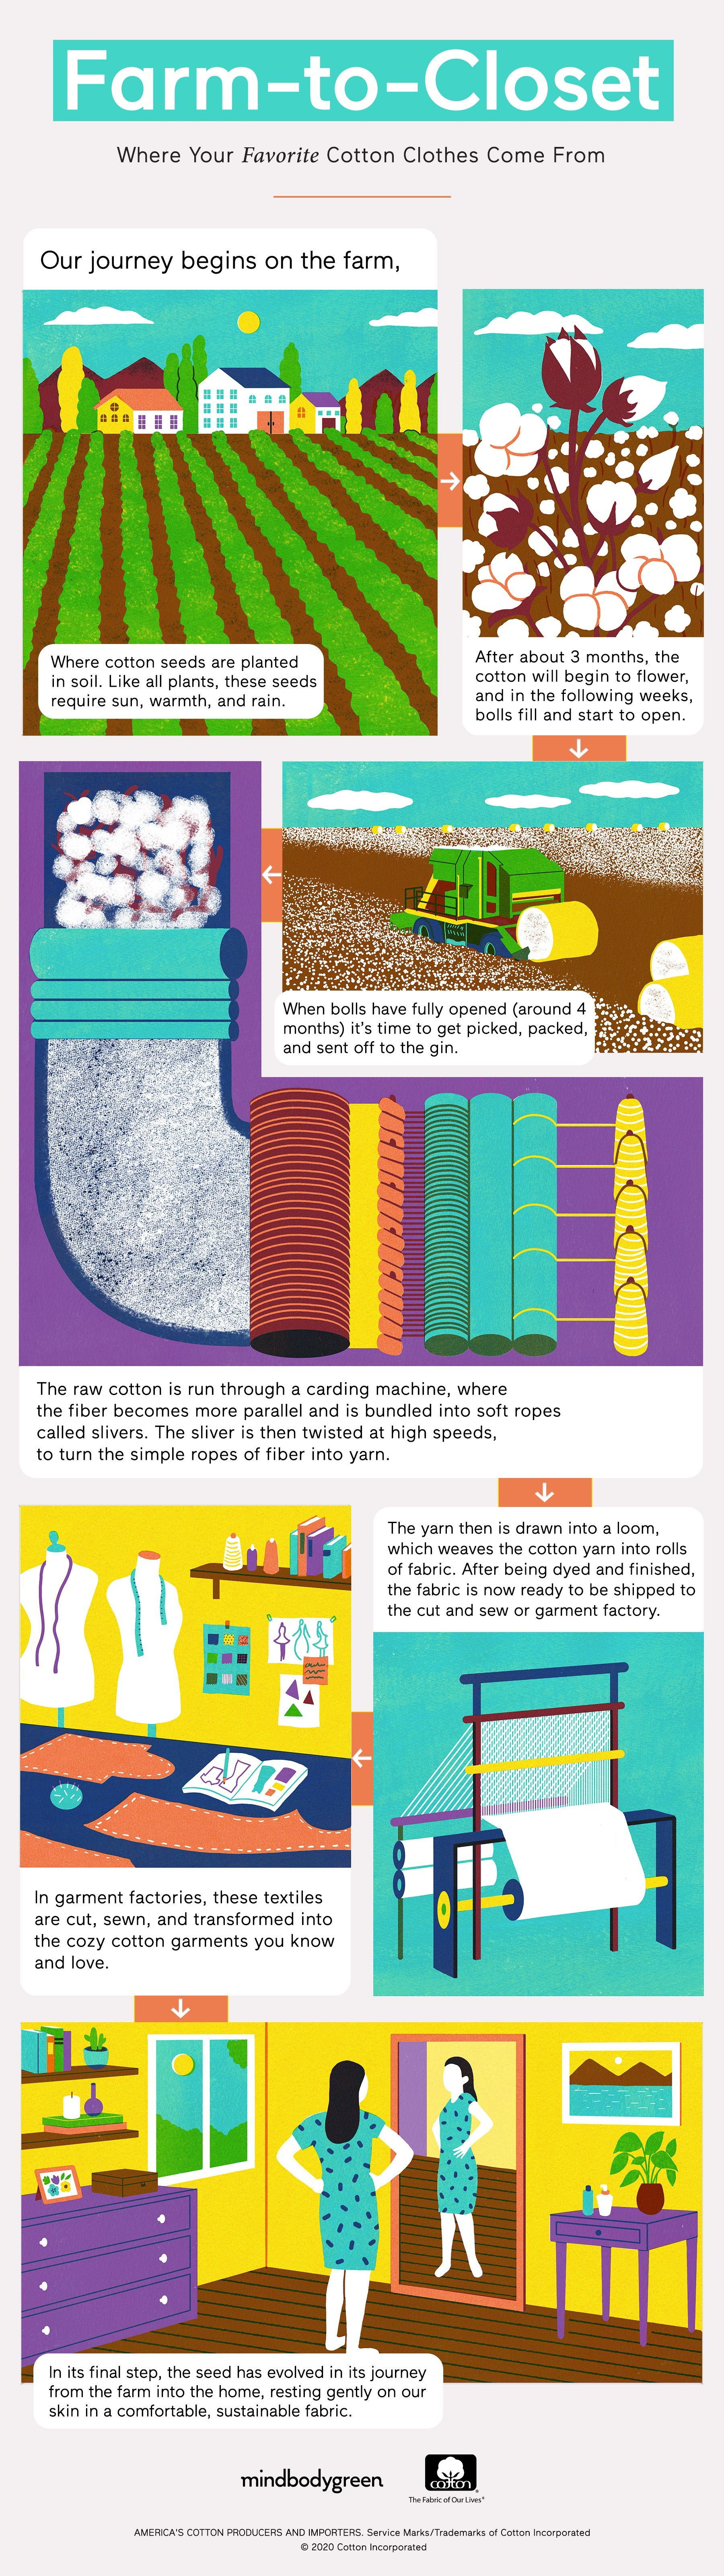 MBG Infographic Final Copy and Color 9 14 20 v2